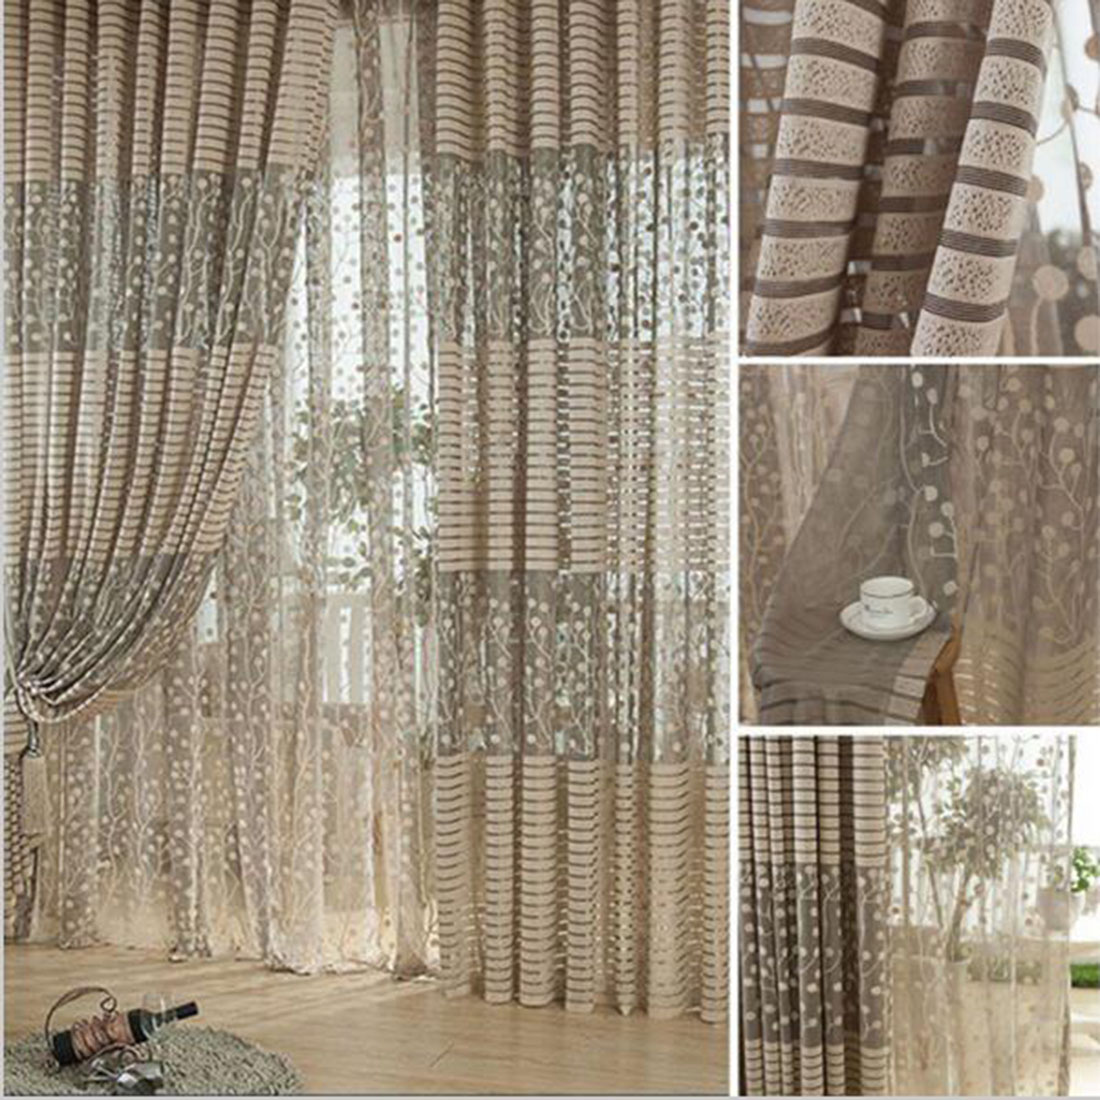 Features: 100% Brand New And High Quality. Specification: Material: Hemp  Size: 100x200cm. Package Include: 1 X Curtain